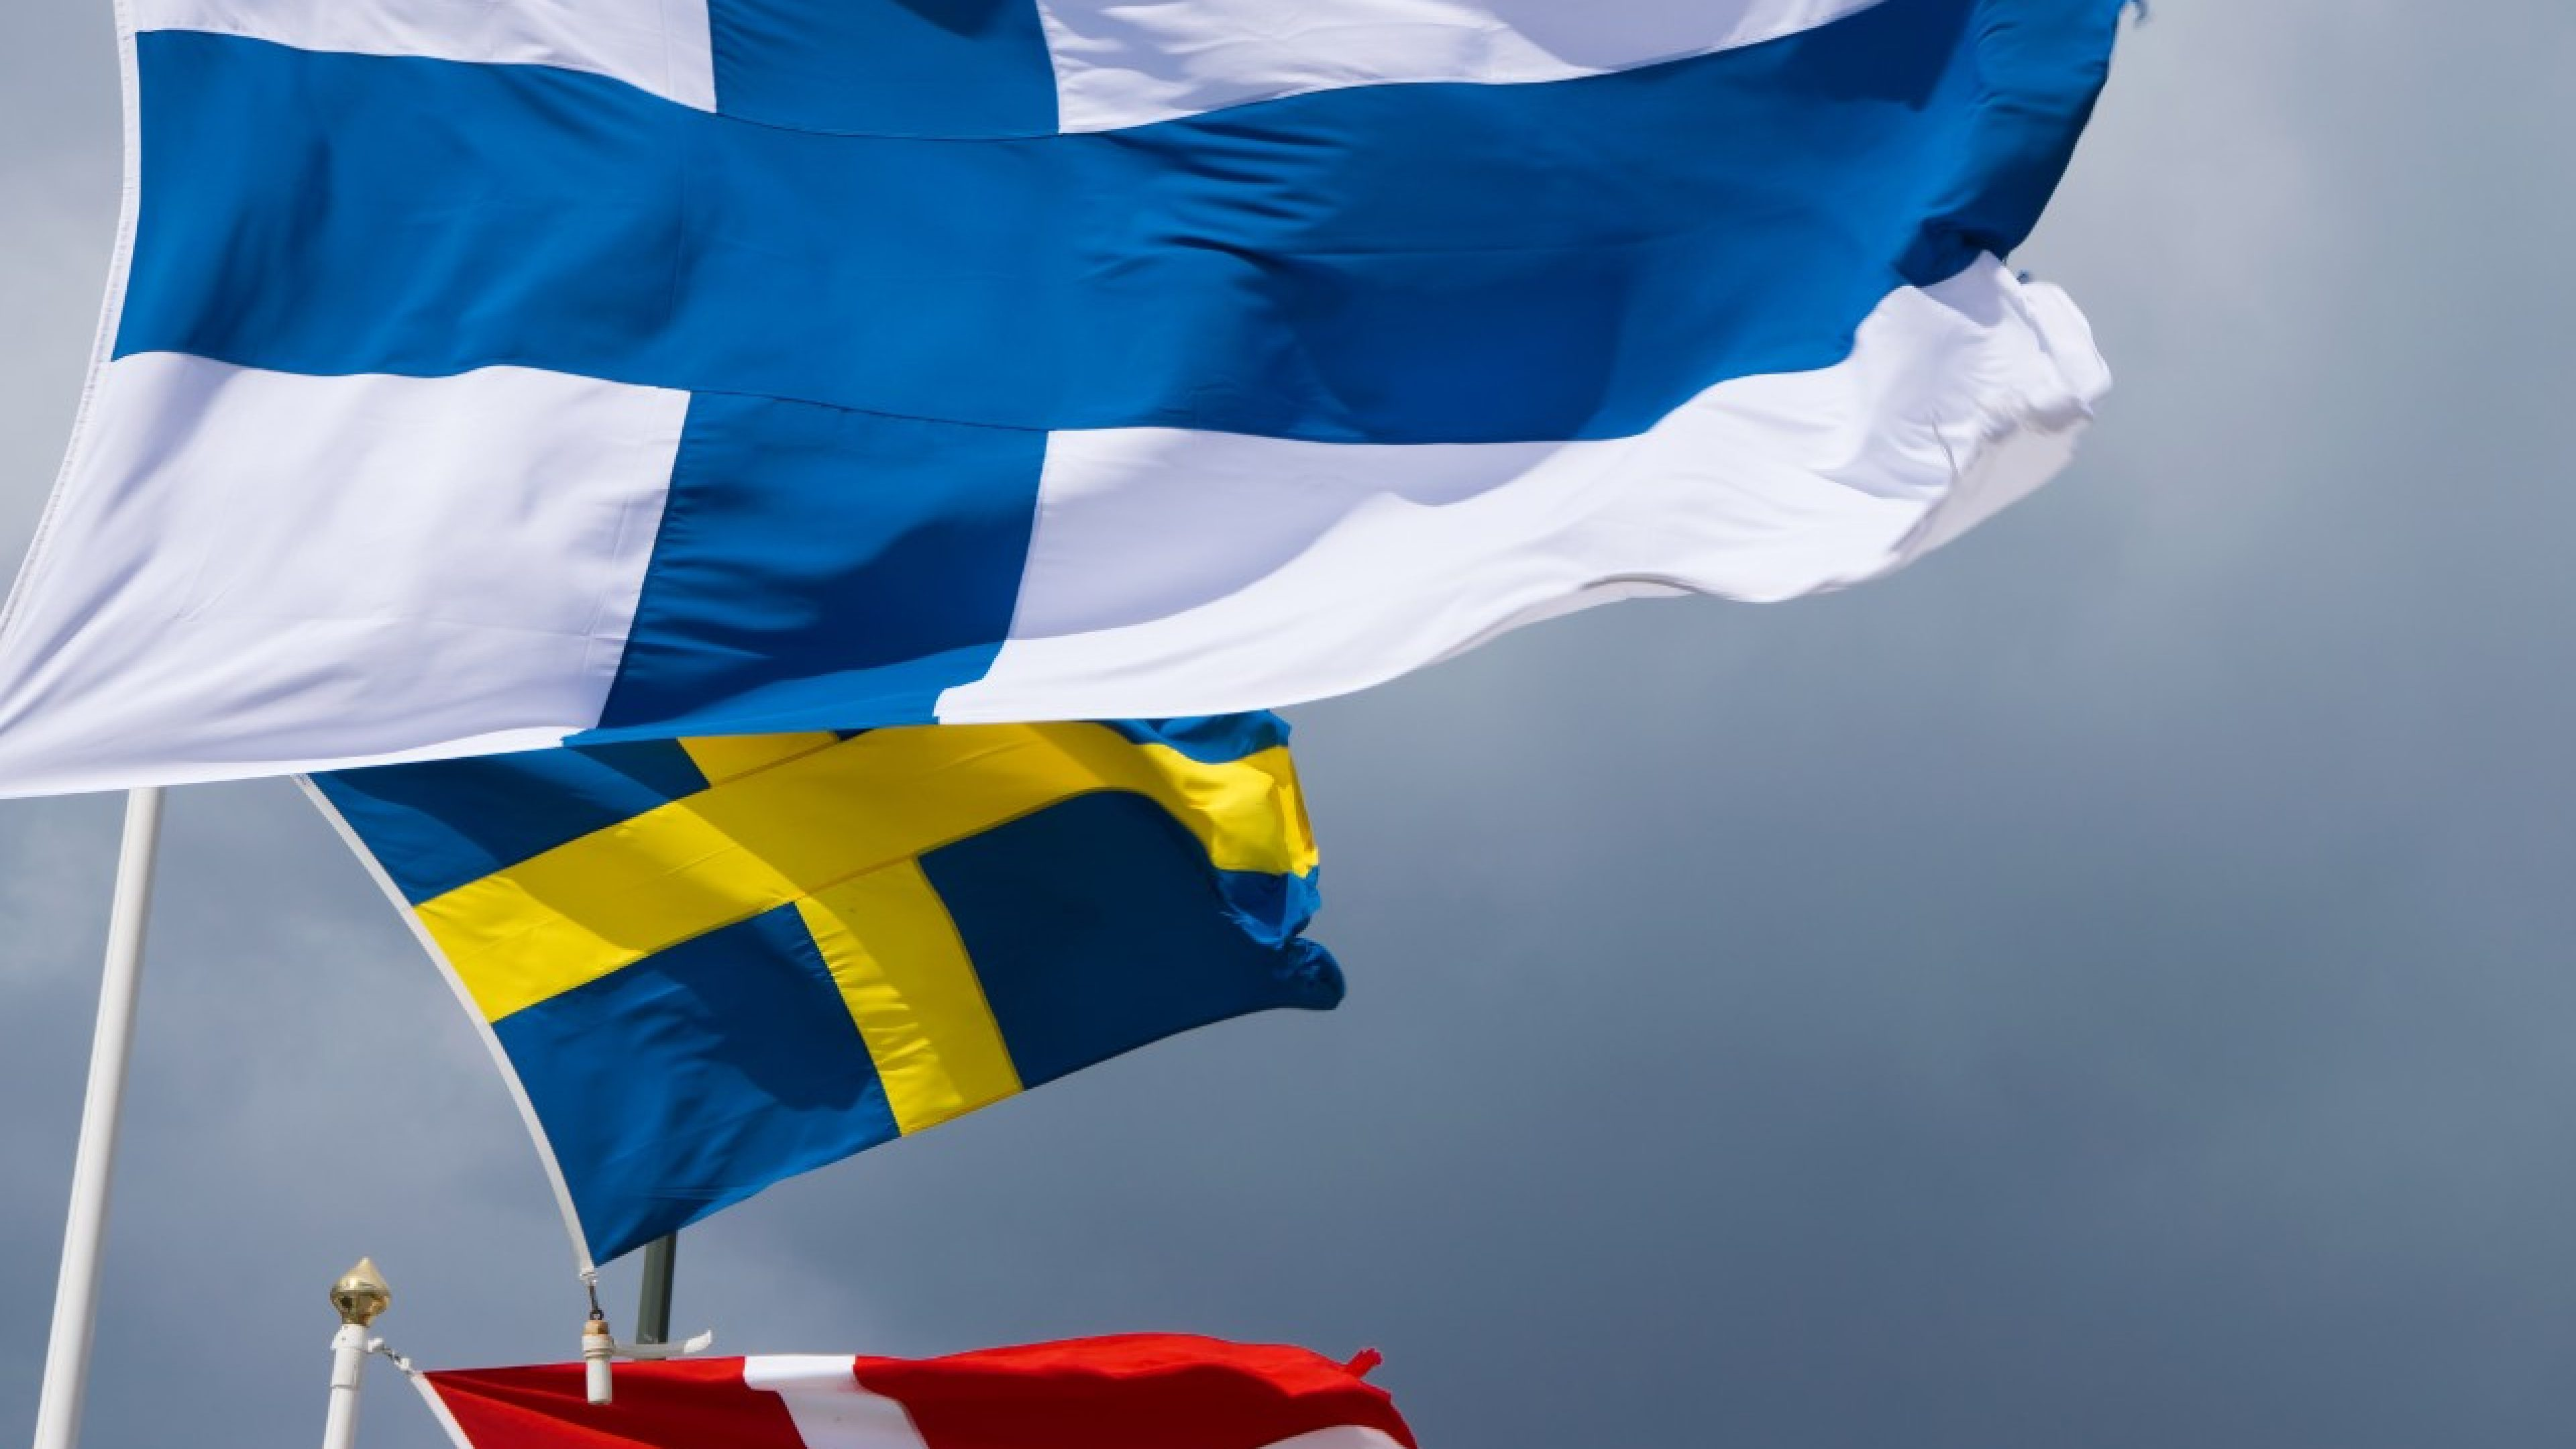 Finland, Sweden and Denmark flags. Malmö, Sweden